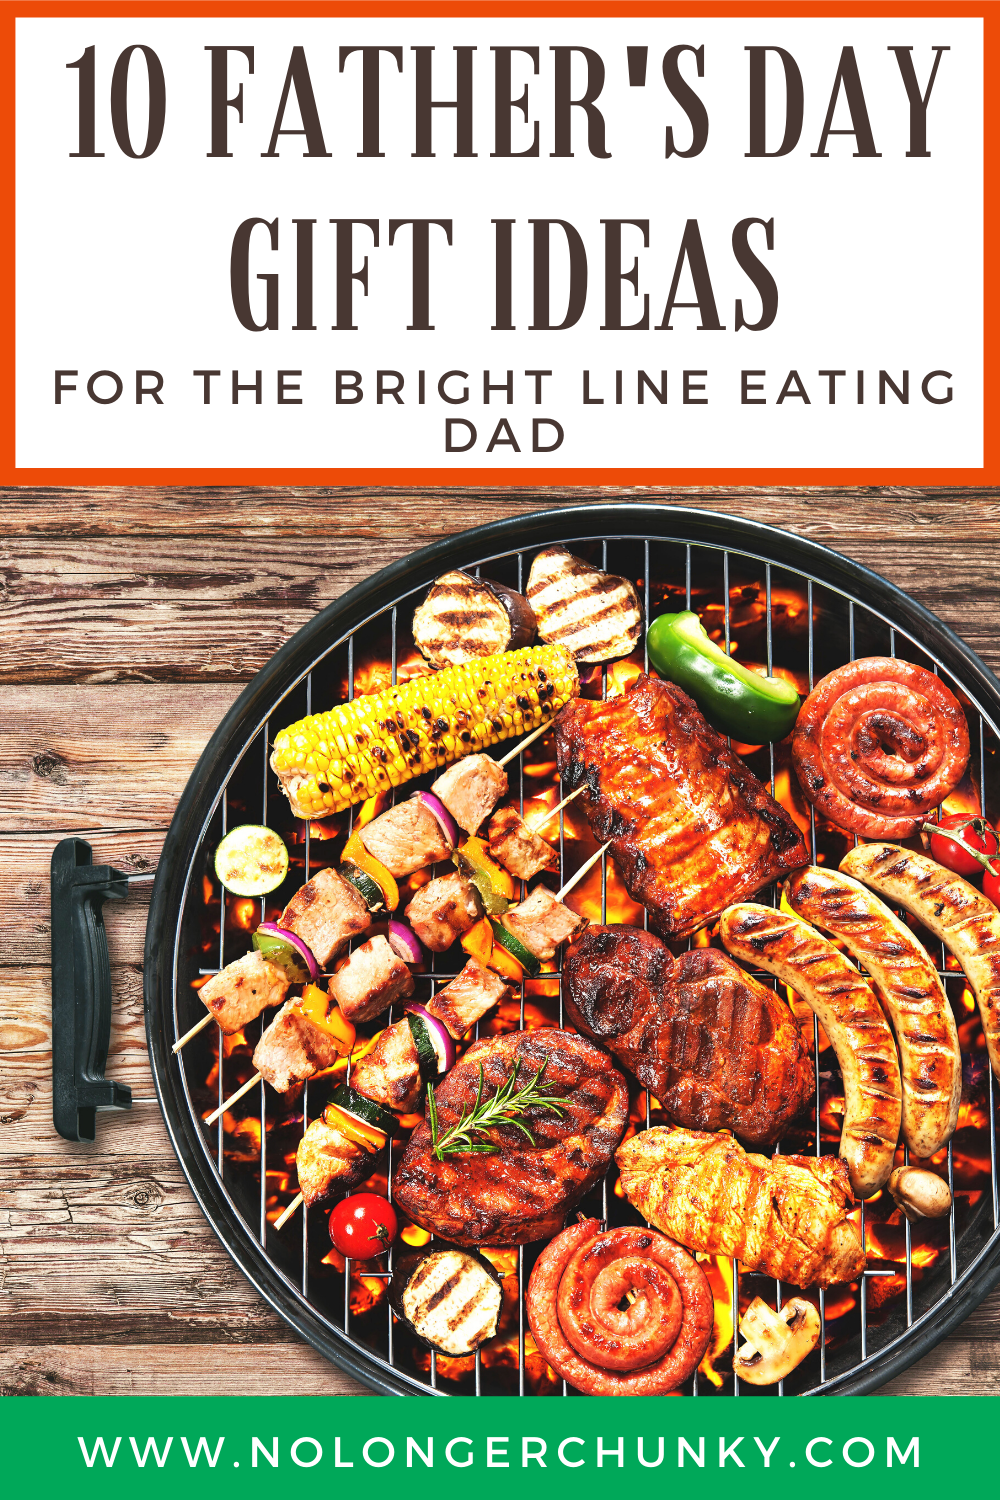 Bright Line Eating Father's Day Gift Ideas 3